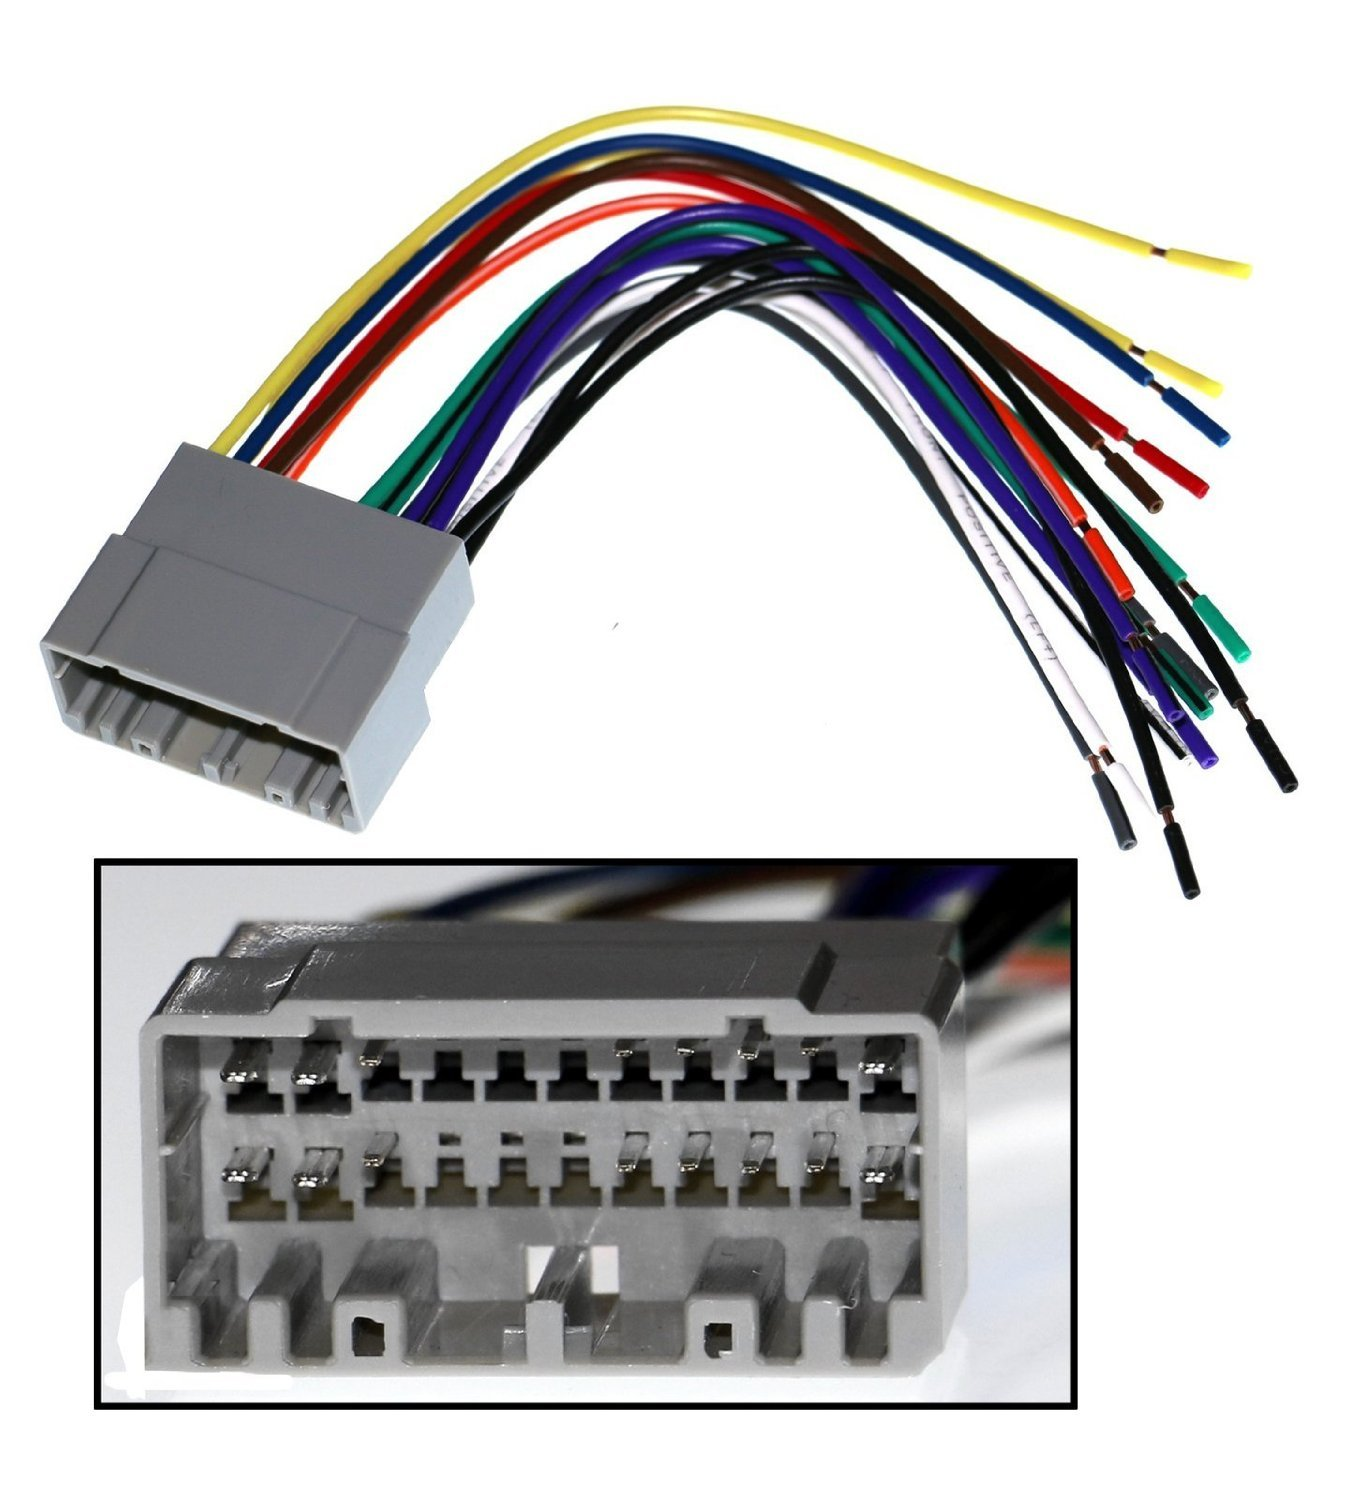 710Q%2BKgavVL._SL1500_ amazon com pioneer car stereo reciever dash install mounting stereo wiring harness at mifinder.co